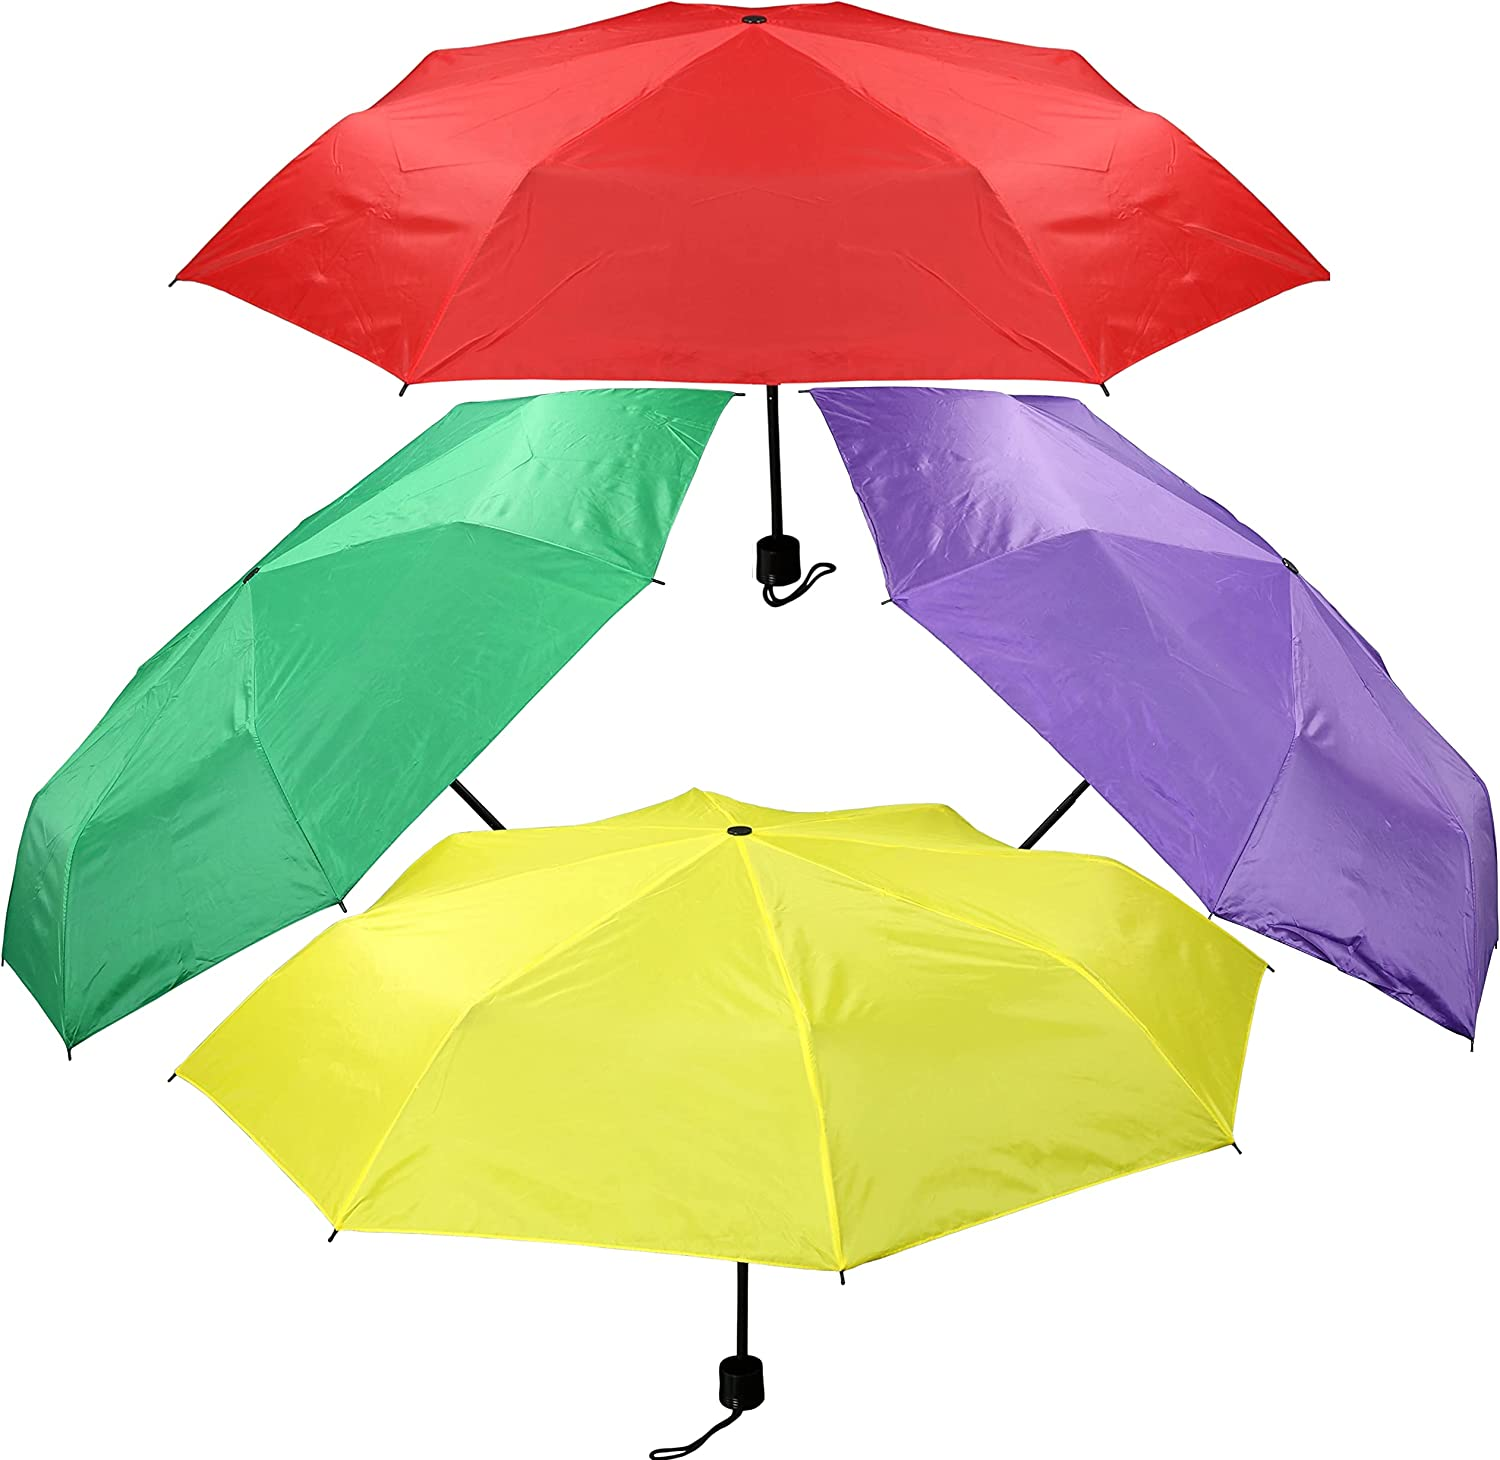 Fashion Iconikal Manual Collapsible Folding 42-inch Diameter Some reservation Umbrella